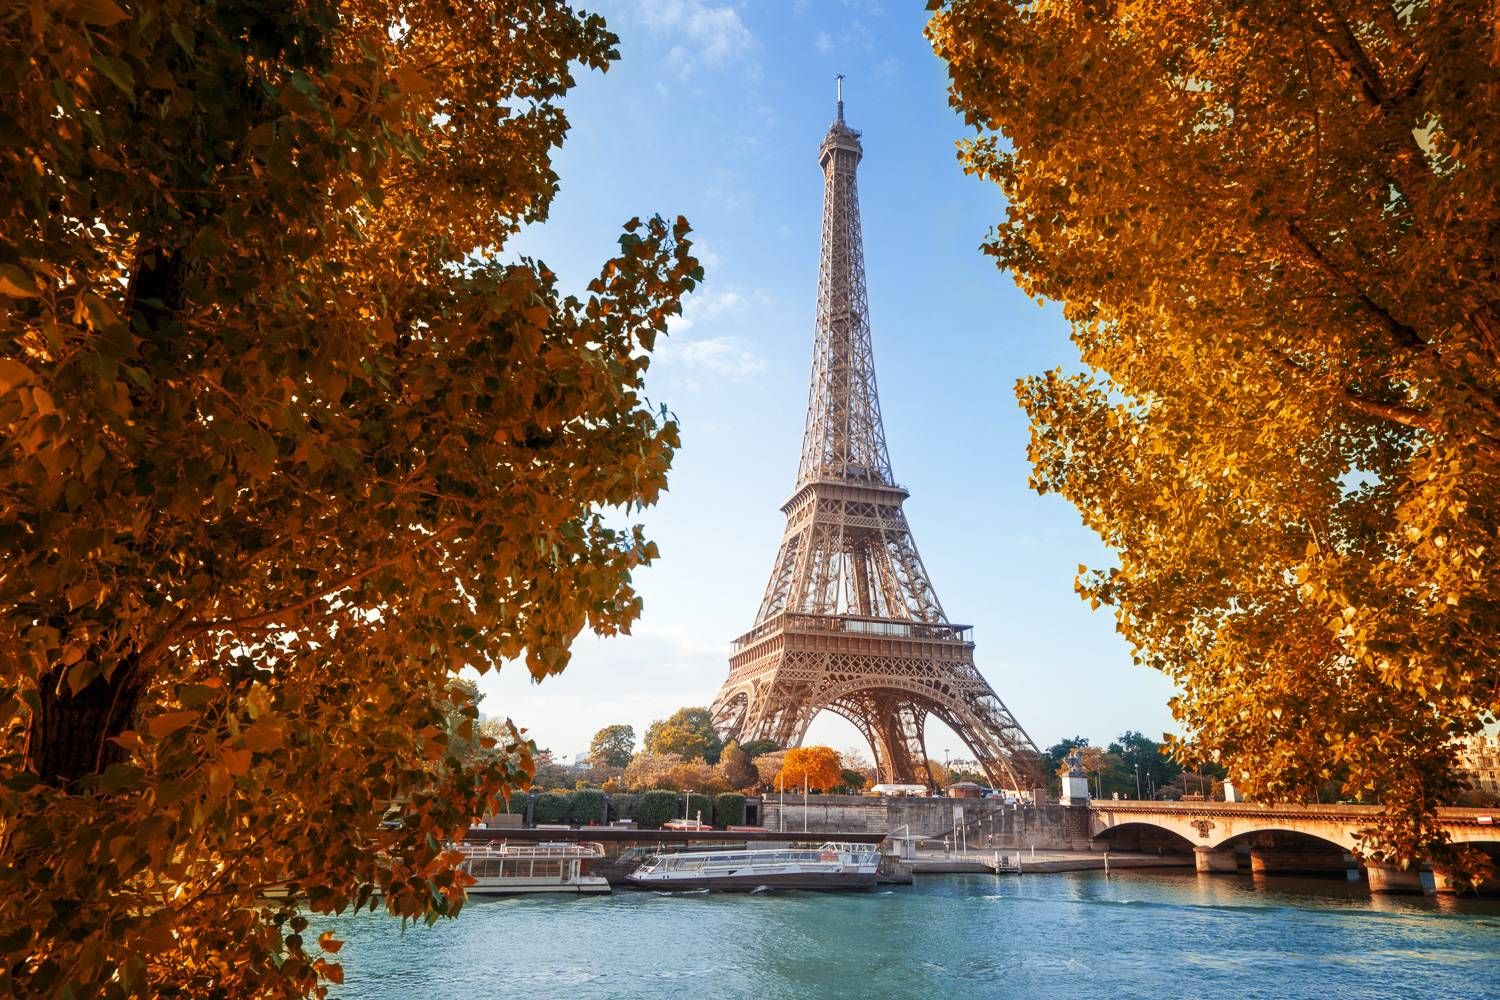 An image overlooking the Eiffel Tower and the warm, vibrant colors of Paris in the fall.